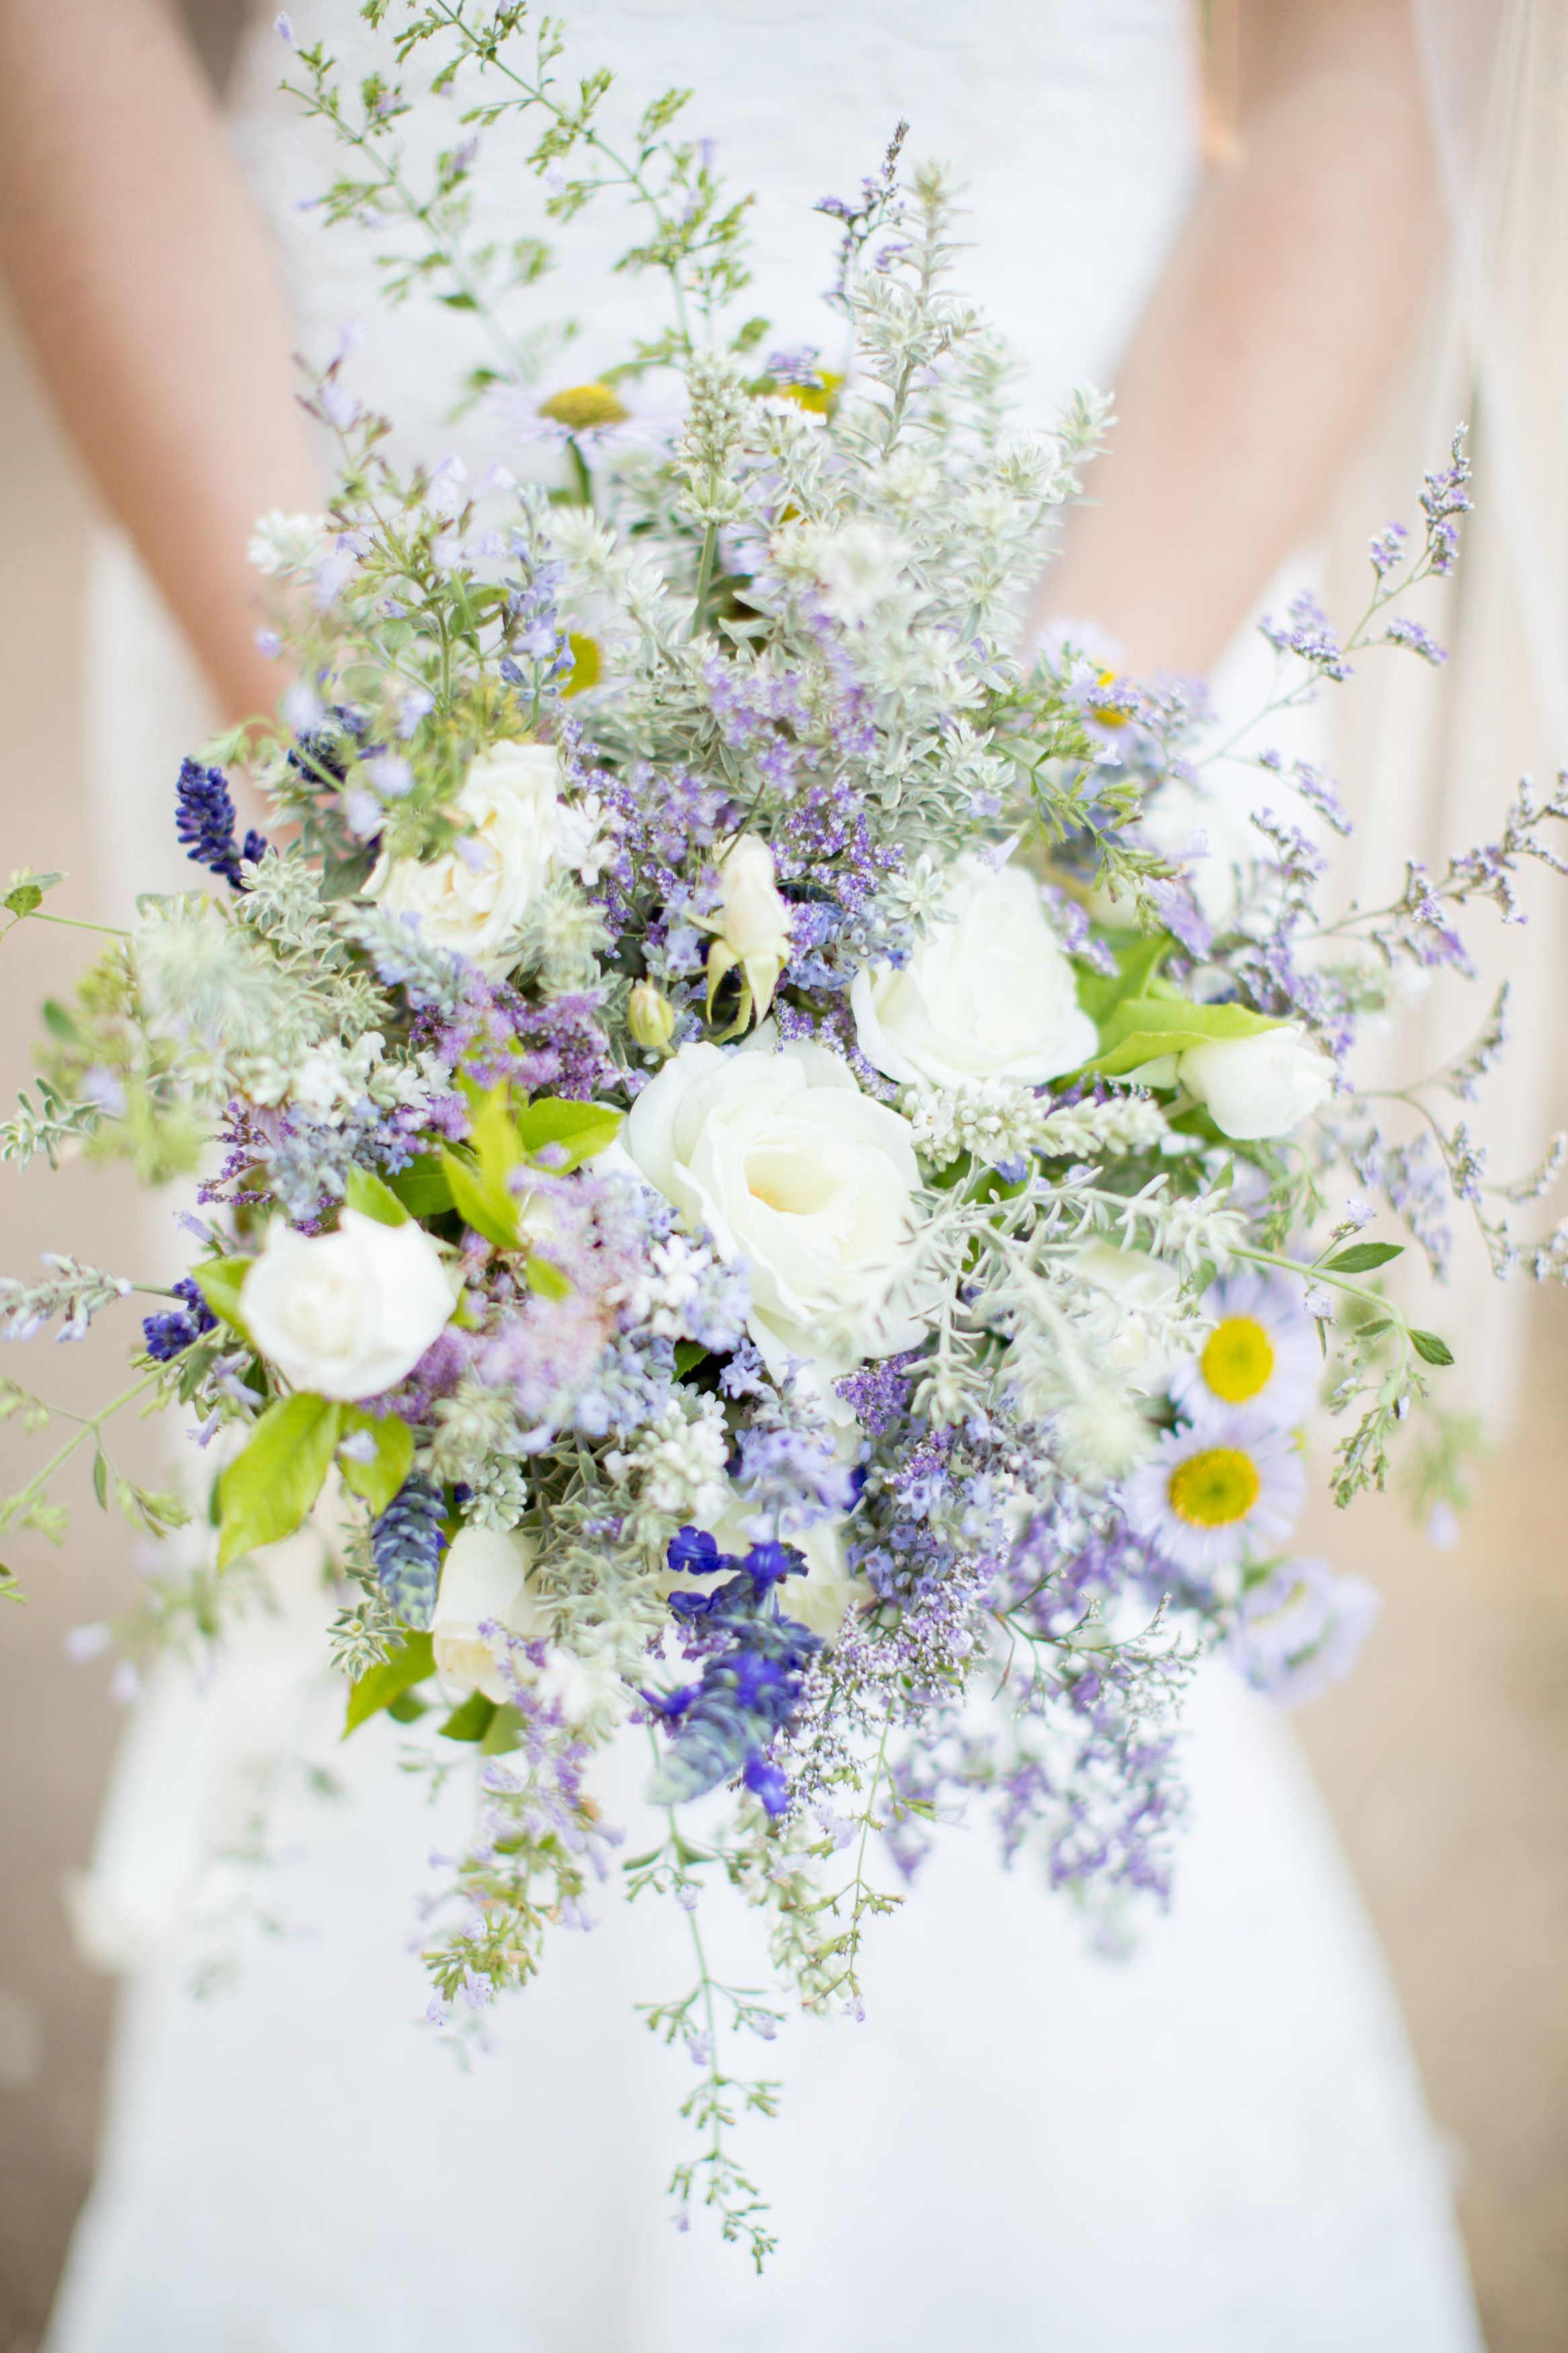 Iceberg White Roses Lavender And California Natives Combined For A Casual Wedding Bouquet Anna J Photography